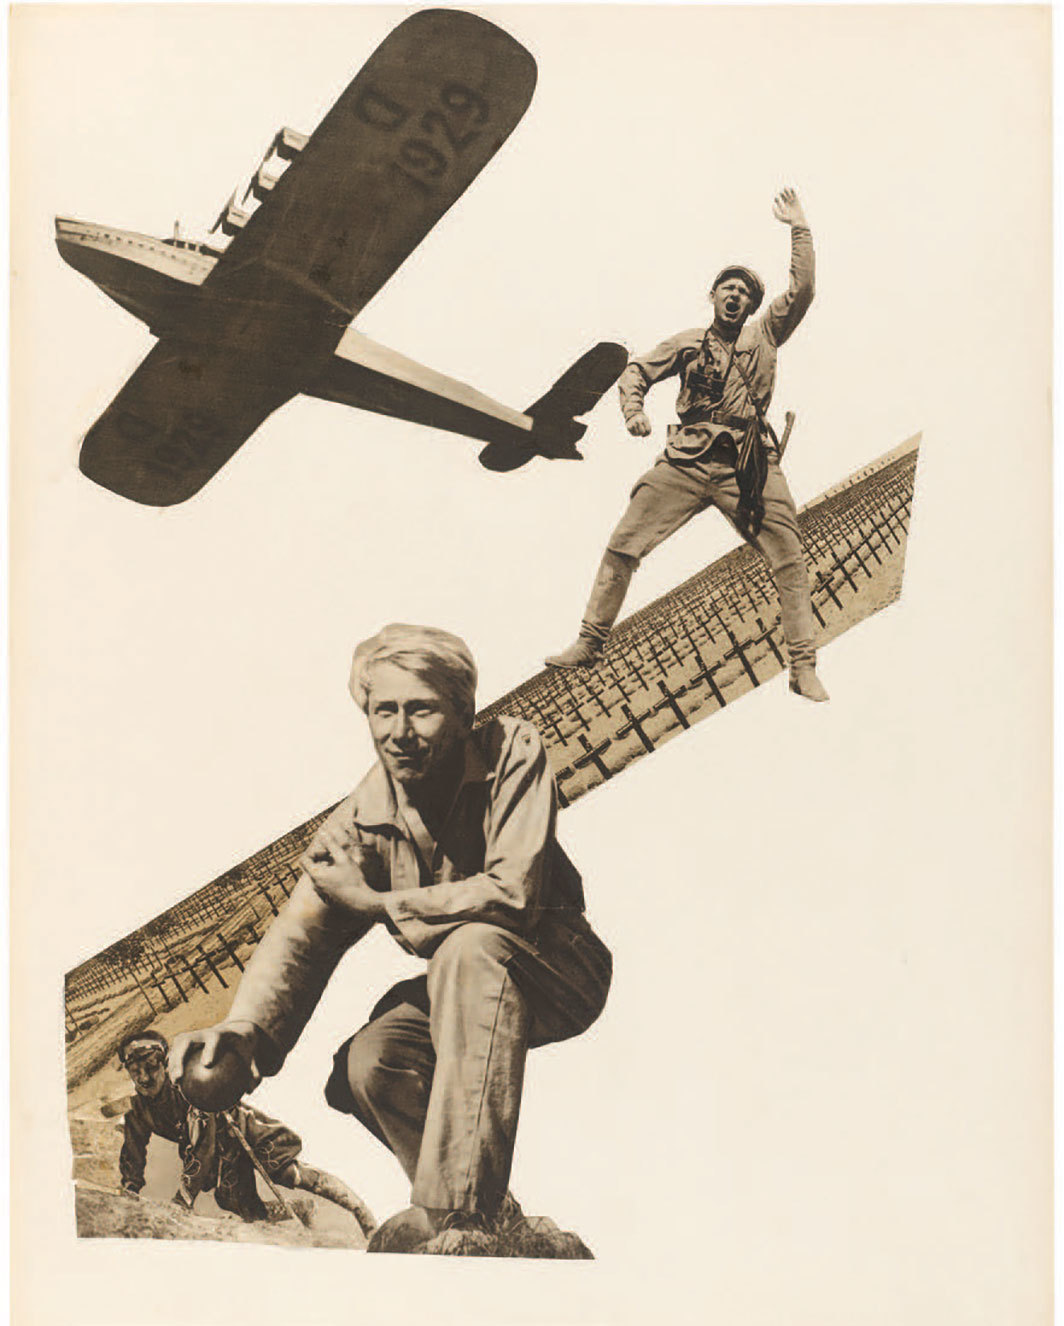 "Marianne Brandt, Untitled (Airplane, Soldiers and Military Cemetery), ca. 1930, collage on cardboard, 25 5⁄8 × 19 3⁄4"". © Artists Rights Society (ARS), New York/VG Bild-Kunst, Bonn. Kupferstich-Kabinett, Staatliche Kunstsammlungen Dresden."